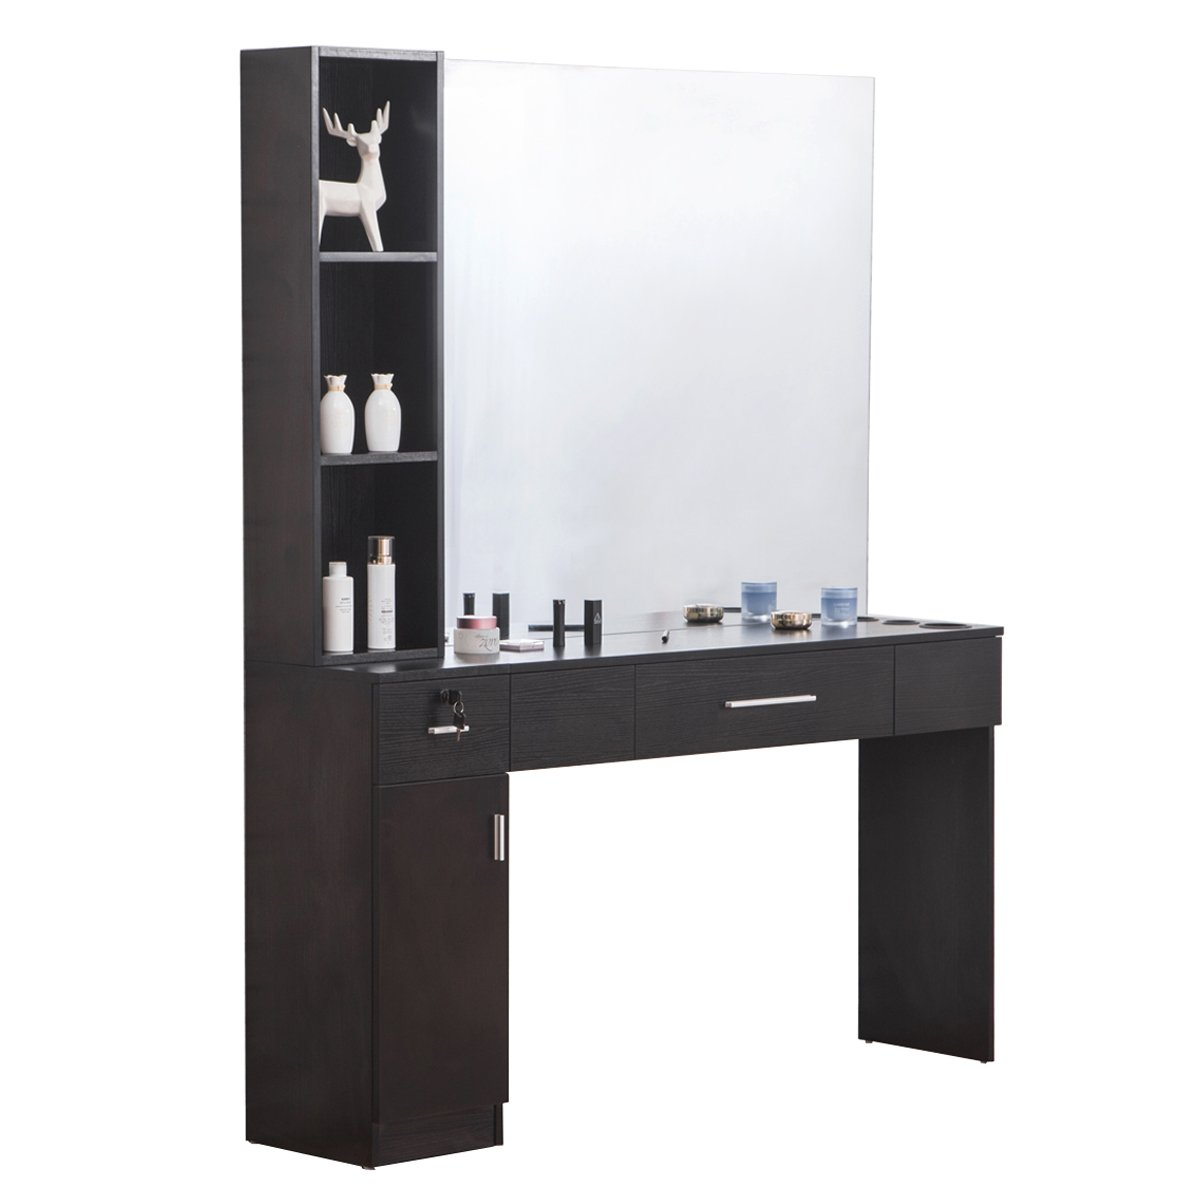 BarberPub Barber Salon Station Makeup Wall Mount Hair Styling Beauty Spa Equipment Set with Mirror 3046 Black